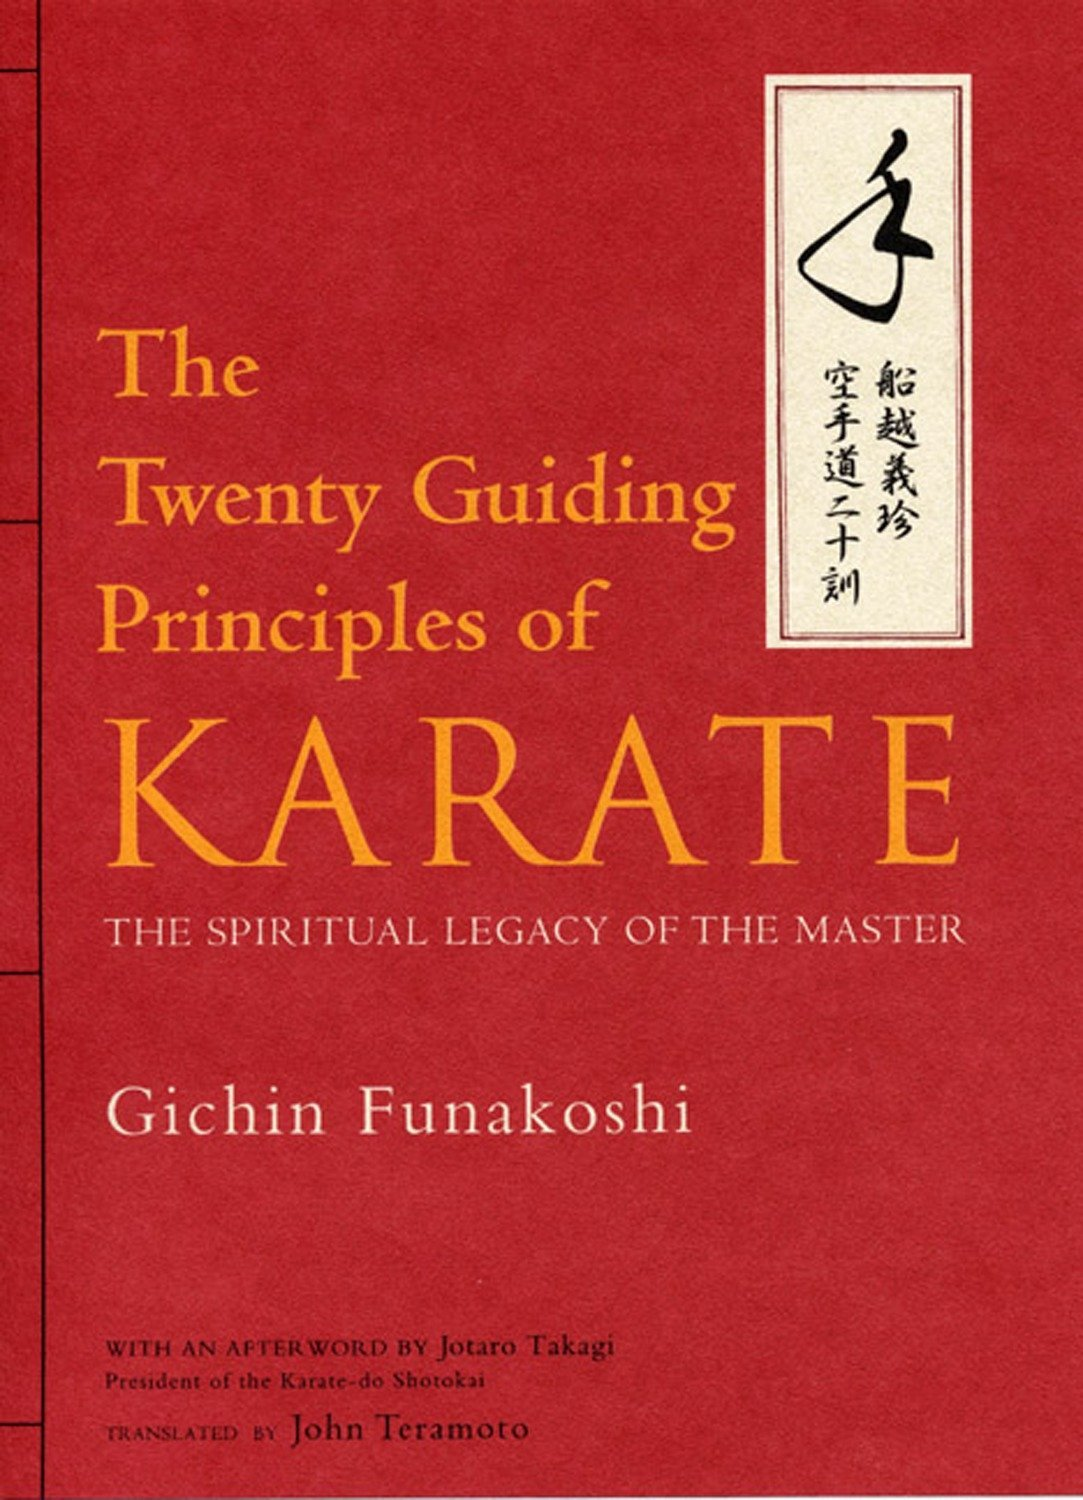 The Twenty Guiding Principles of Karate: The Spiritual Legacy of the Master by Kodansha